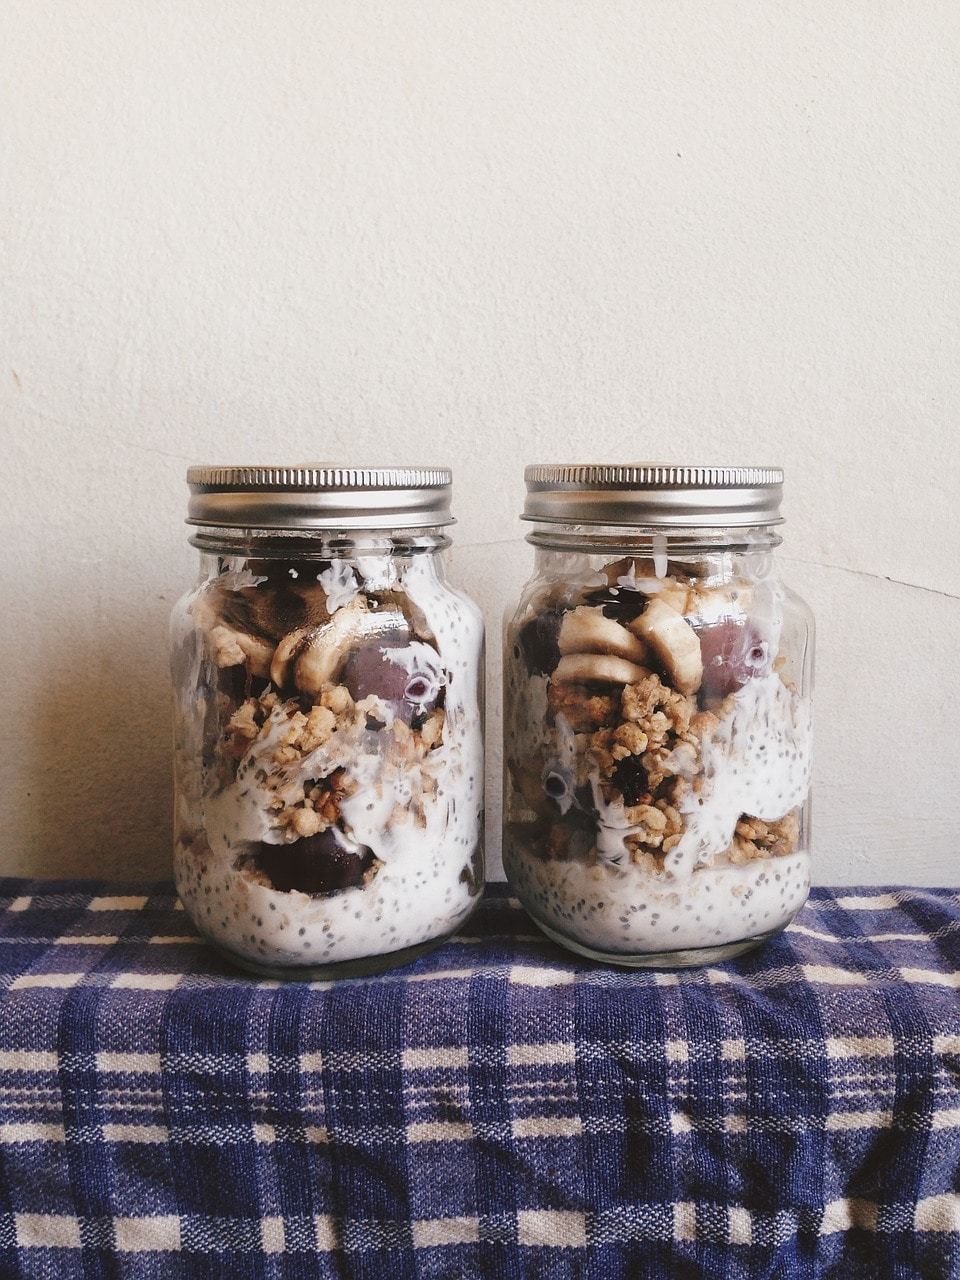 Is it safe to freeze overnight oats